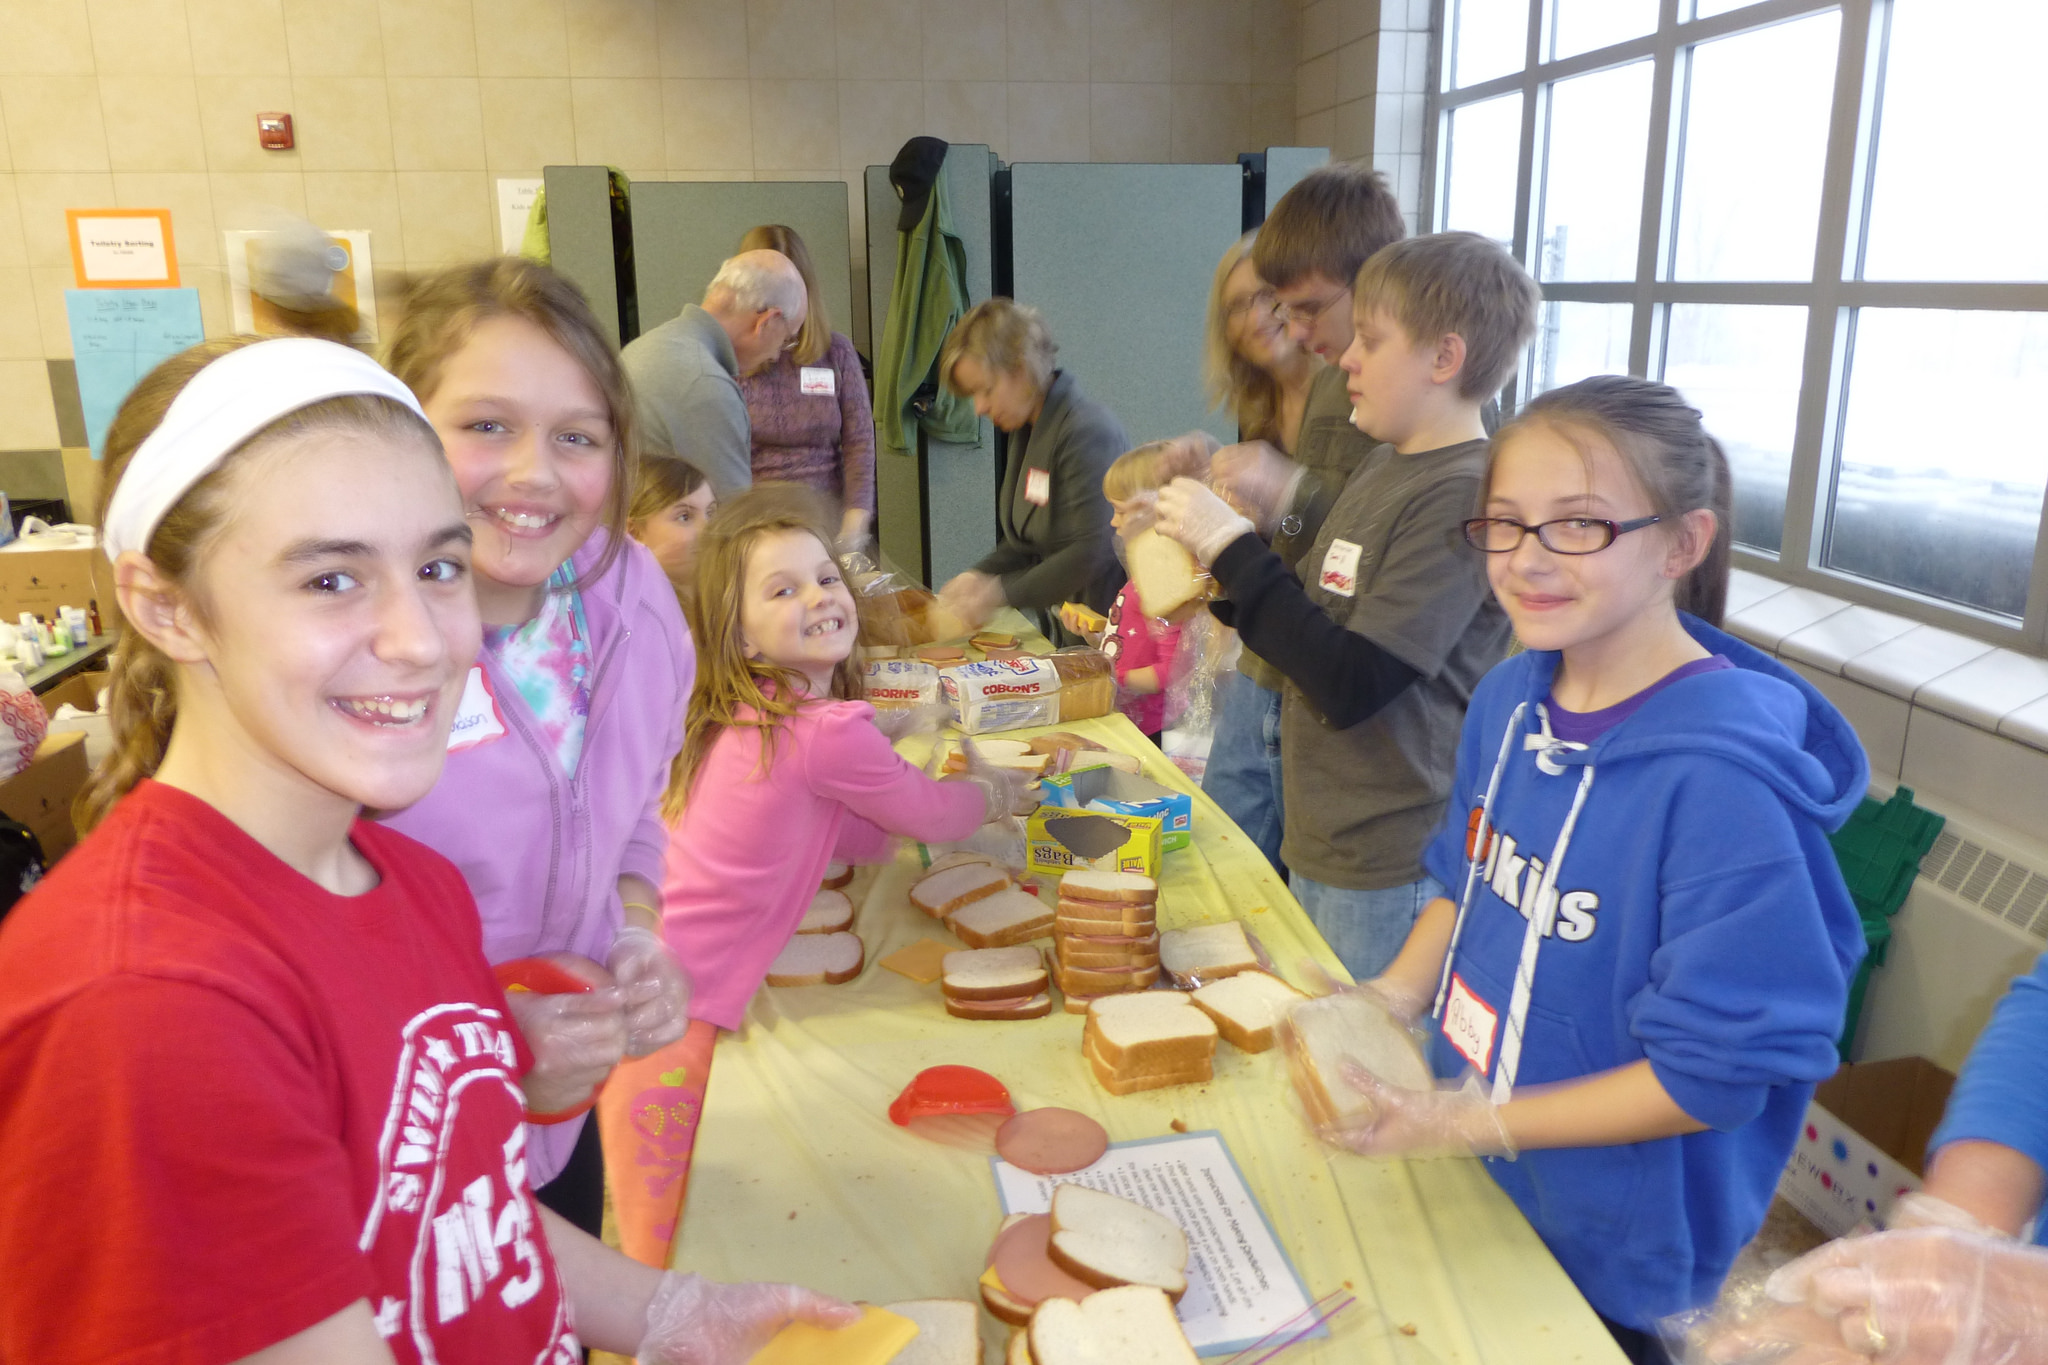 Students Volunteering for Others